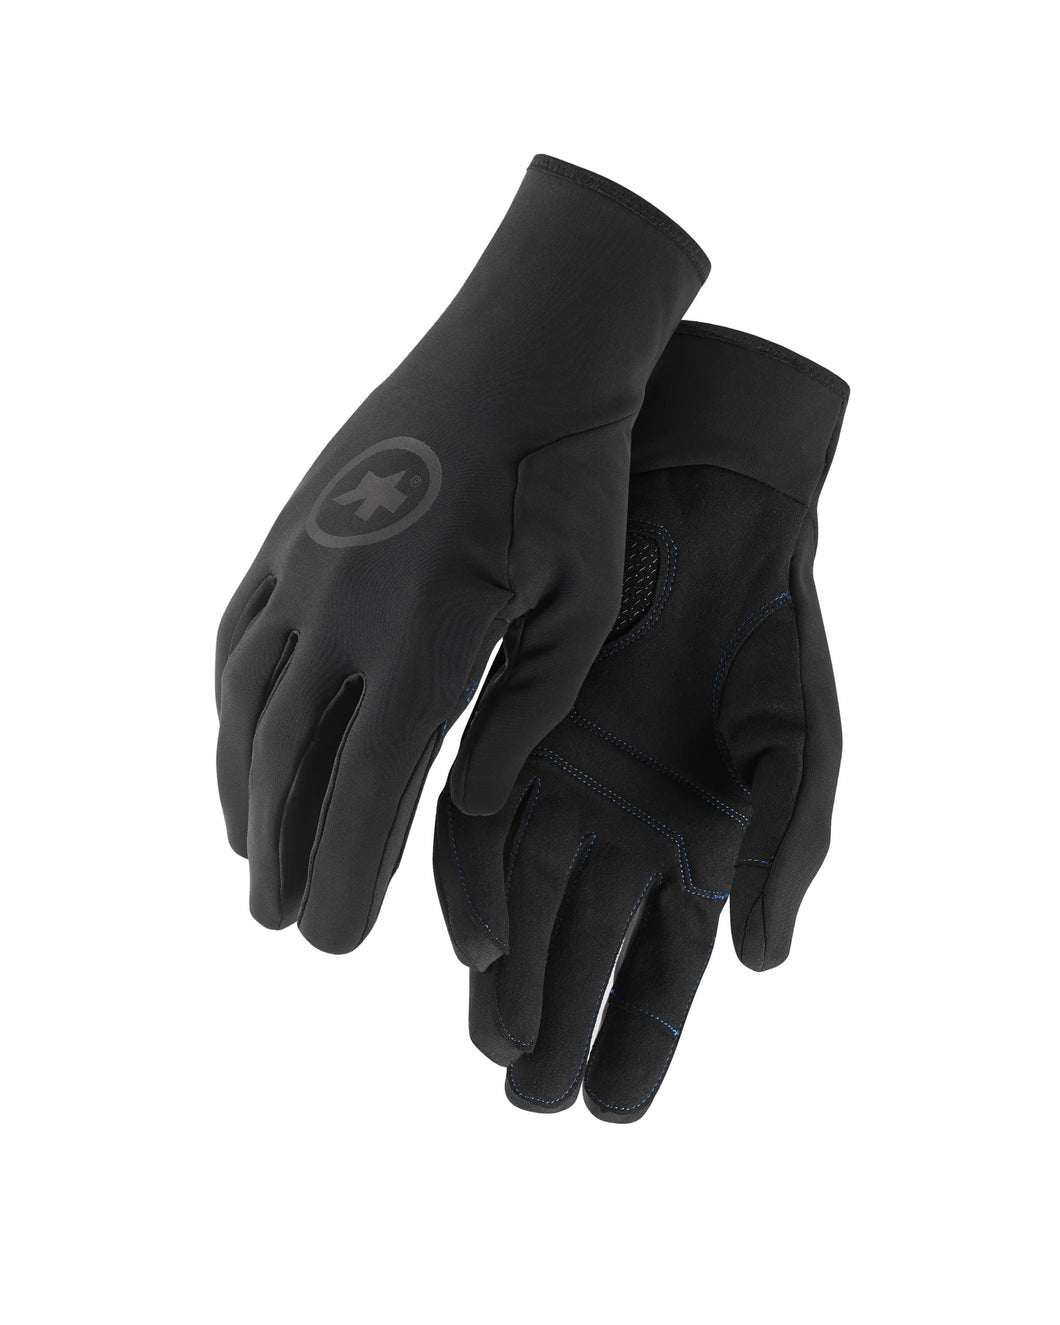 Assos Winter Gloves, 2020 - Cycle Closet